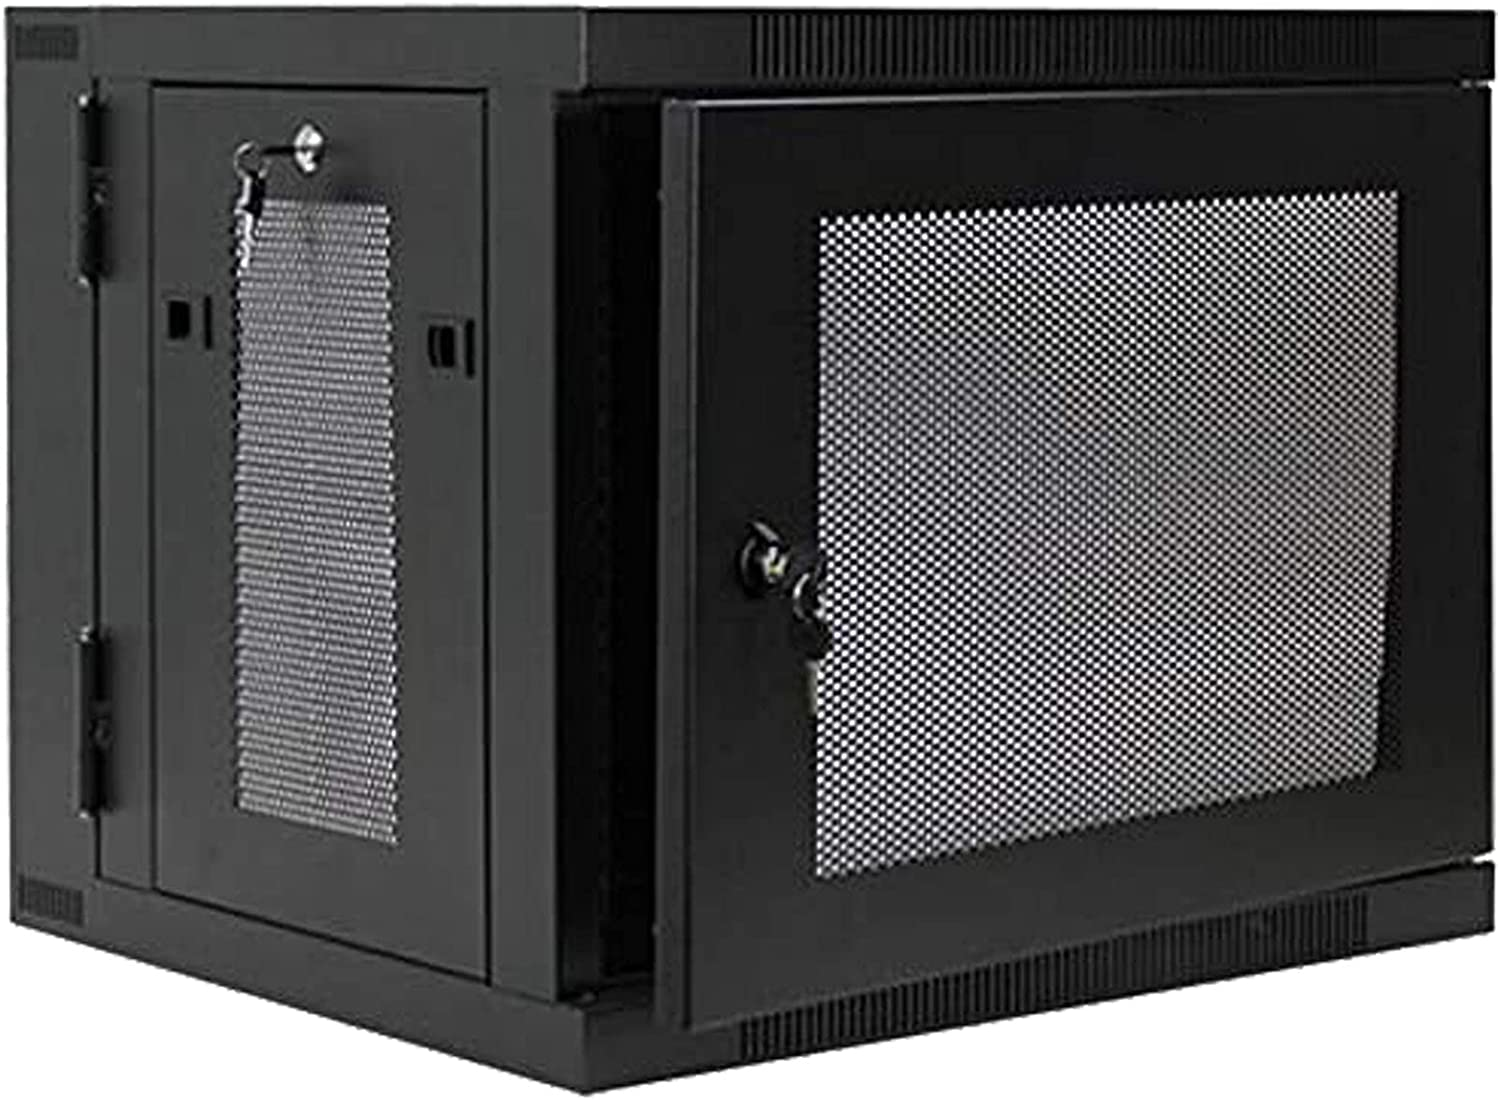 9U Wall Mount Hinged Swing Out Perforated IT Server Network Rack Cabinet Lock, Apply to Office Space, Network Wiring Room, Computer Room, Data Room,Control Center,etc, Sold by MendyNet